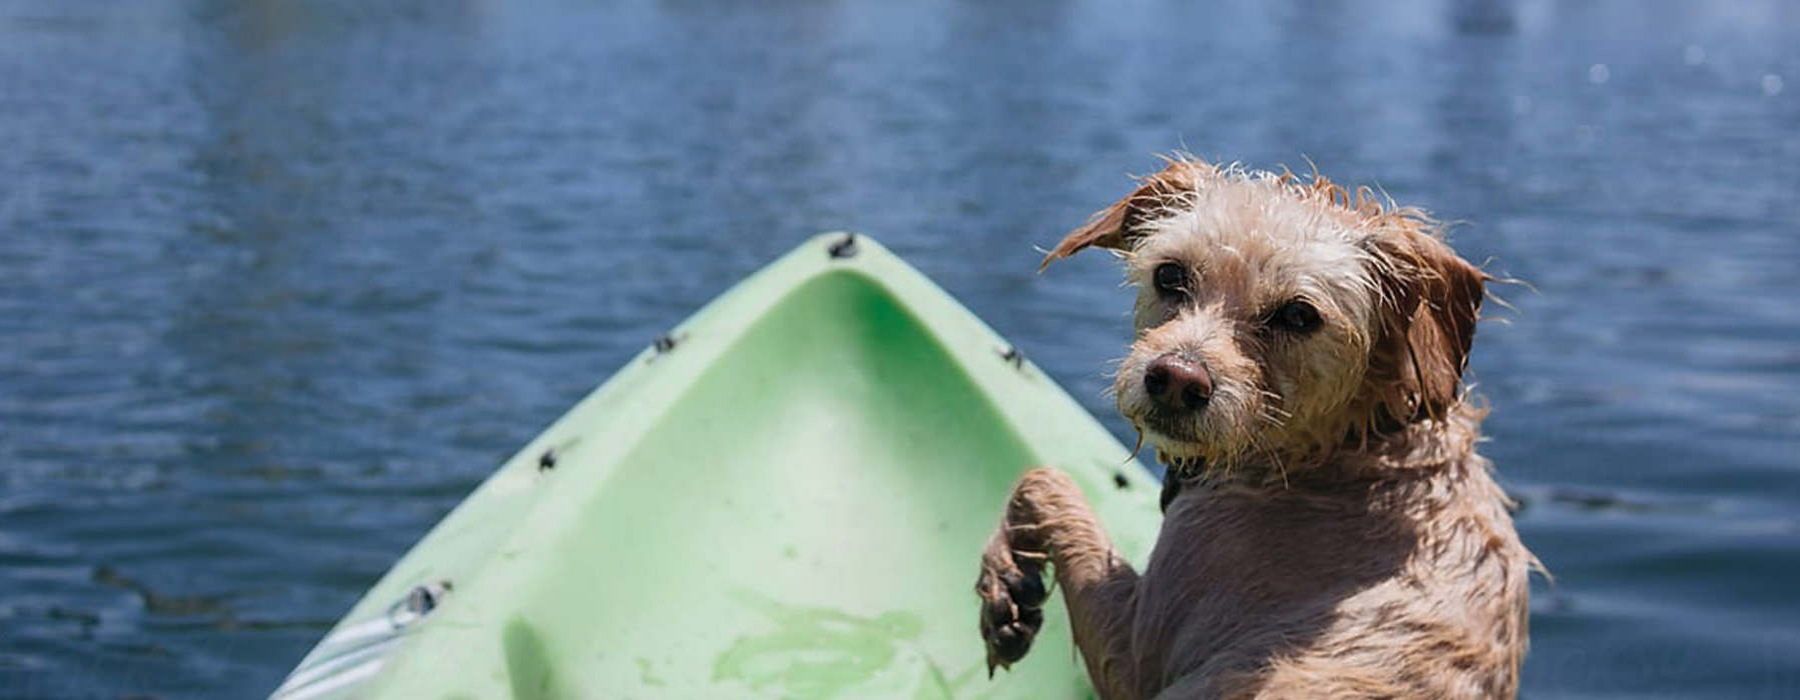 Puppy on a boat on the river